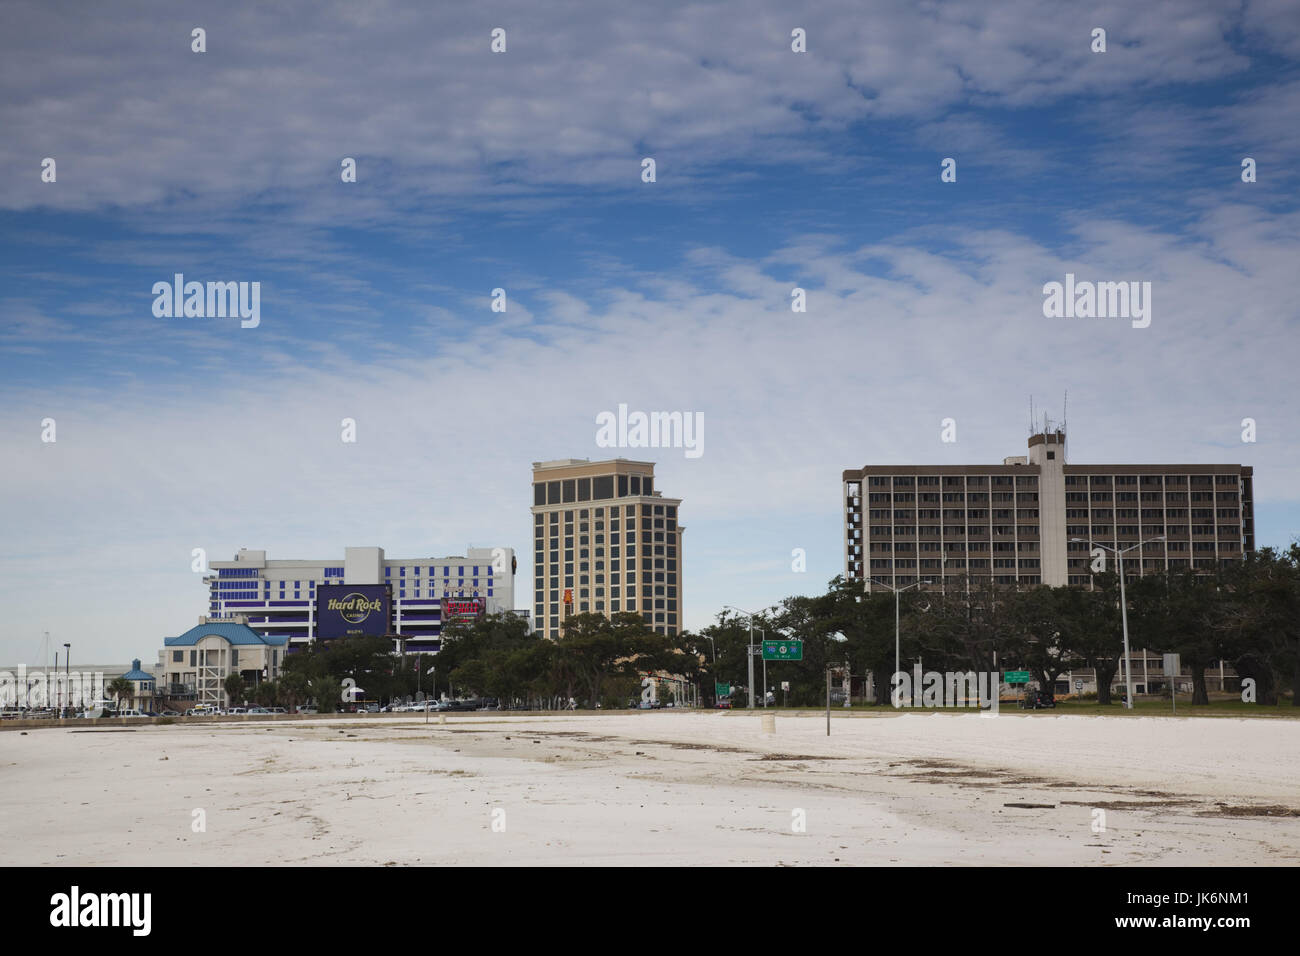 Usa Mississippi Biloxi Casinos On Beach Boulevard Stock Photo